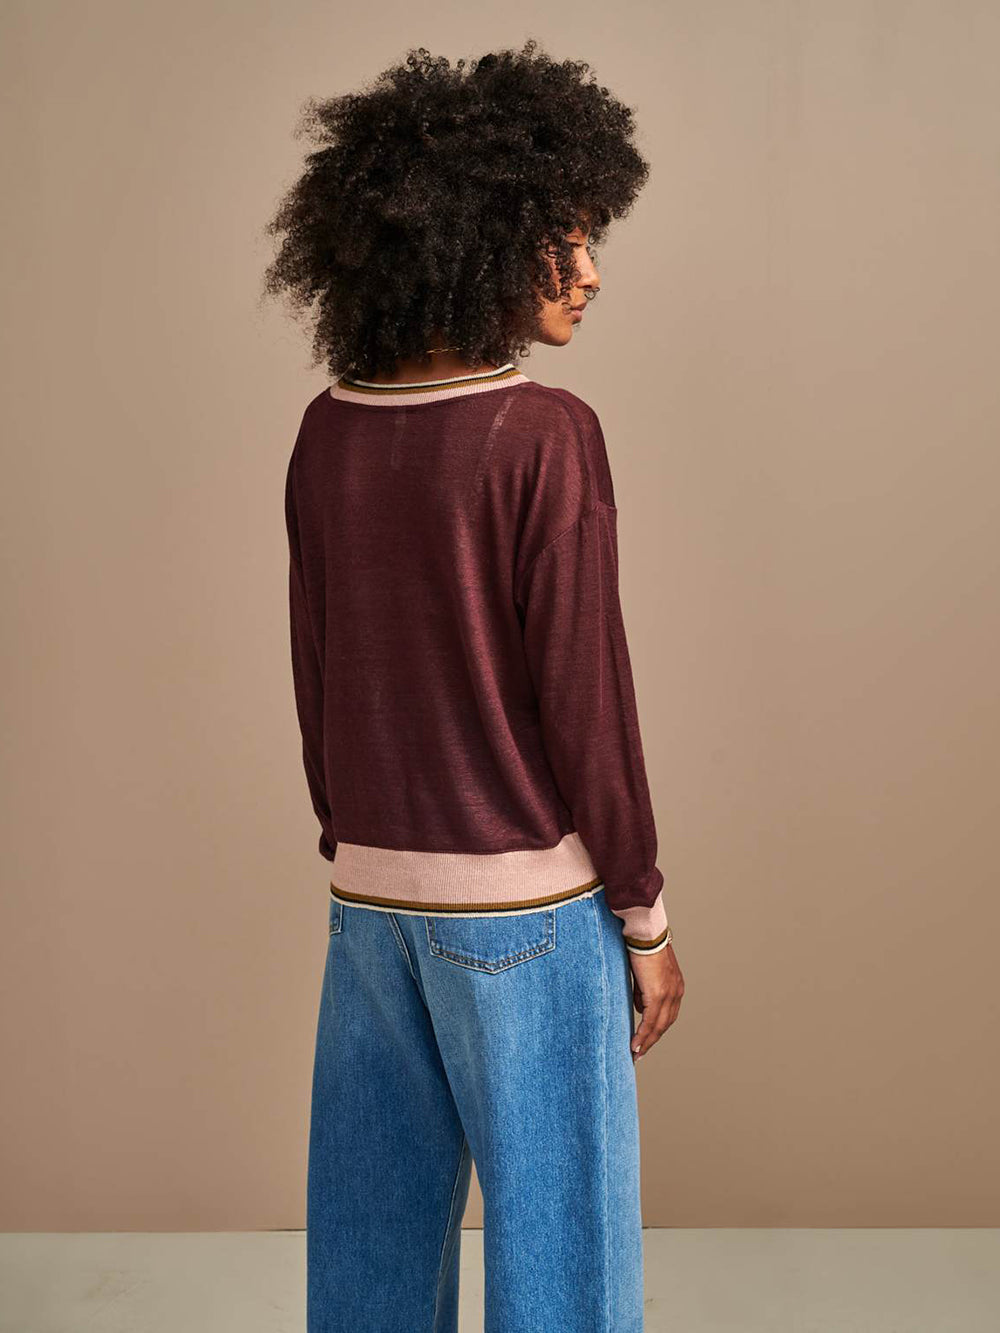 bellerose senia t-shirt in burgundy